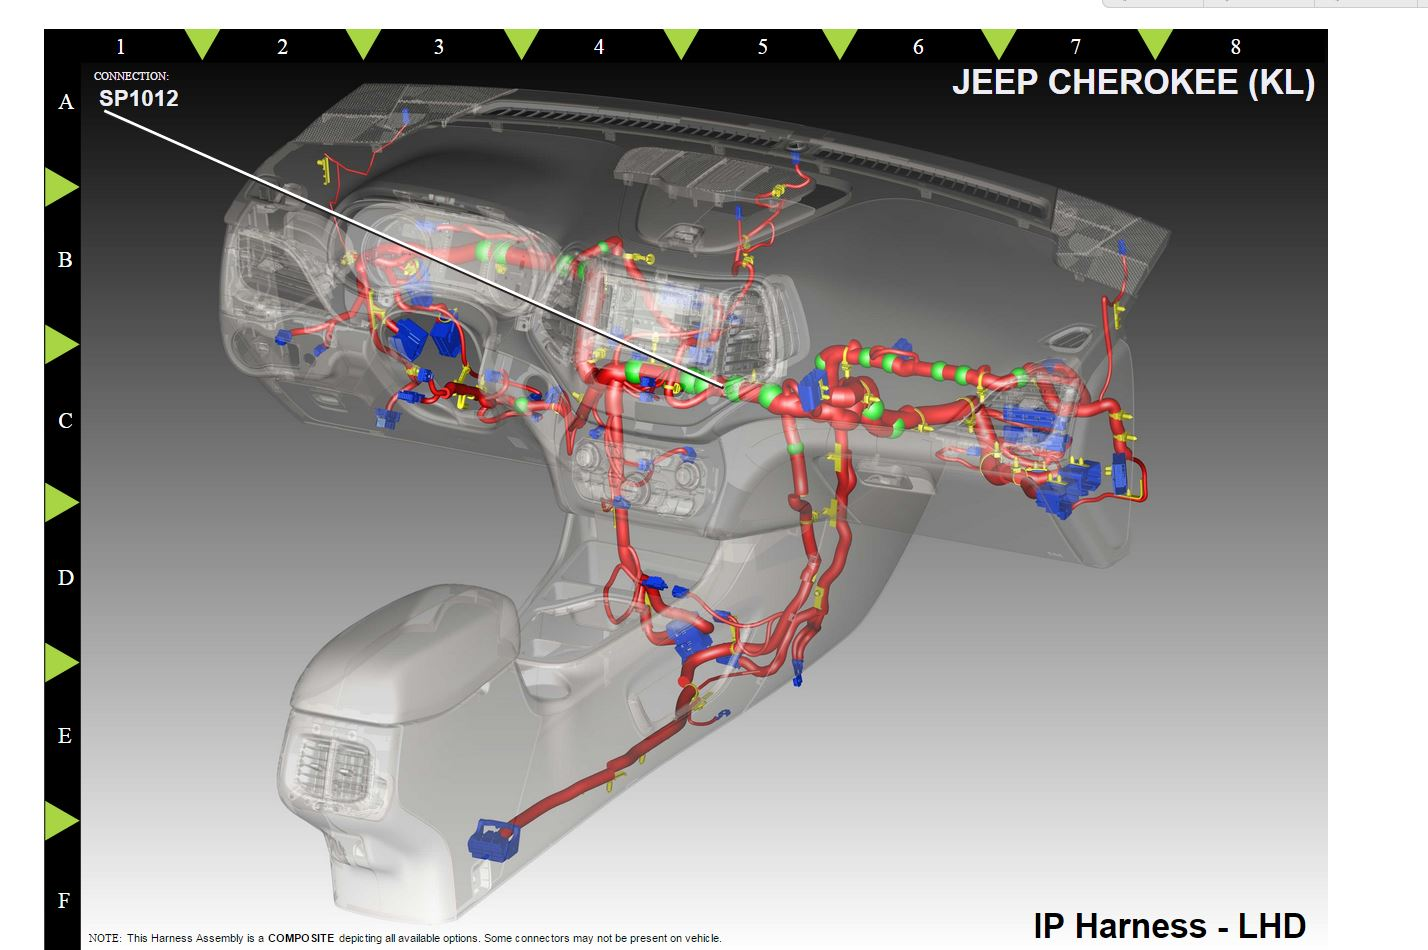 wiring diagram resource bonanza here 2014 jeep cherokee forums click image for larger version splice jpg views 1863 size 141 7